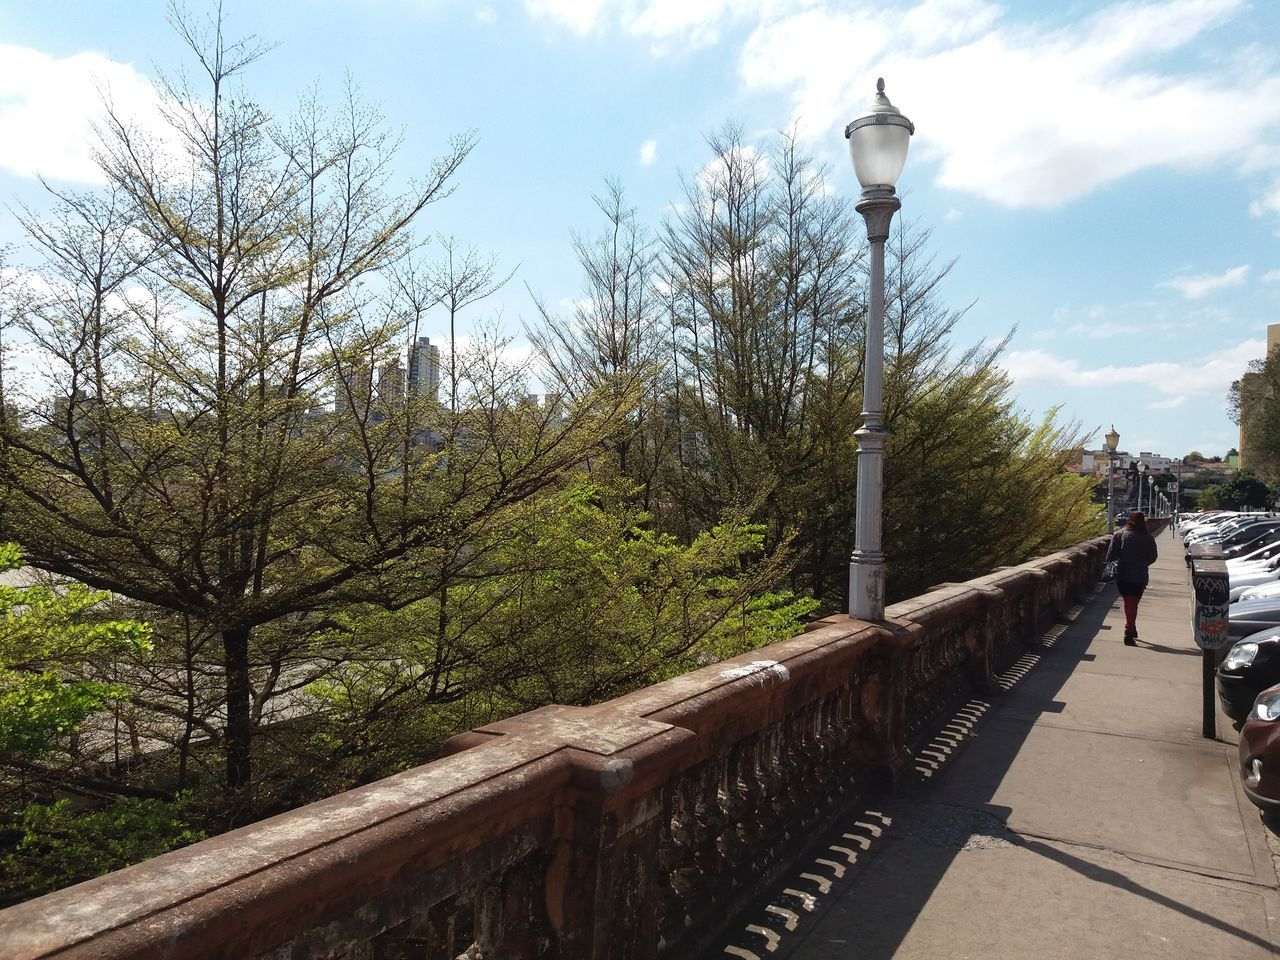 tree, railing, lighting equipment, walking, day, real people, full length, outdoors, one person, sky, the way forward, nature, bare tree, walkway, architecture, people